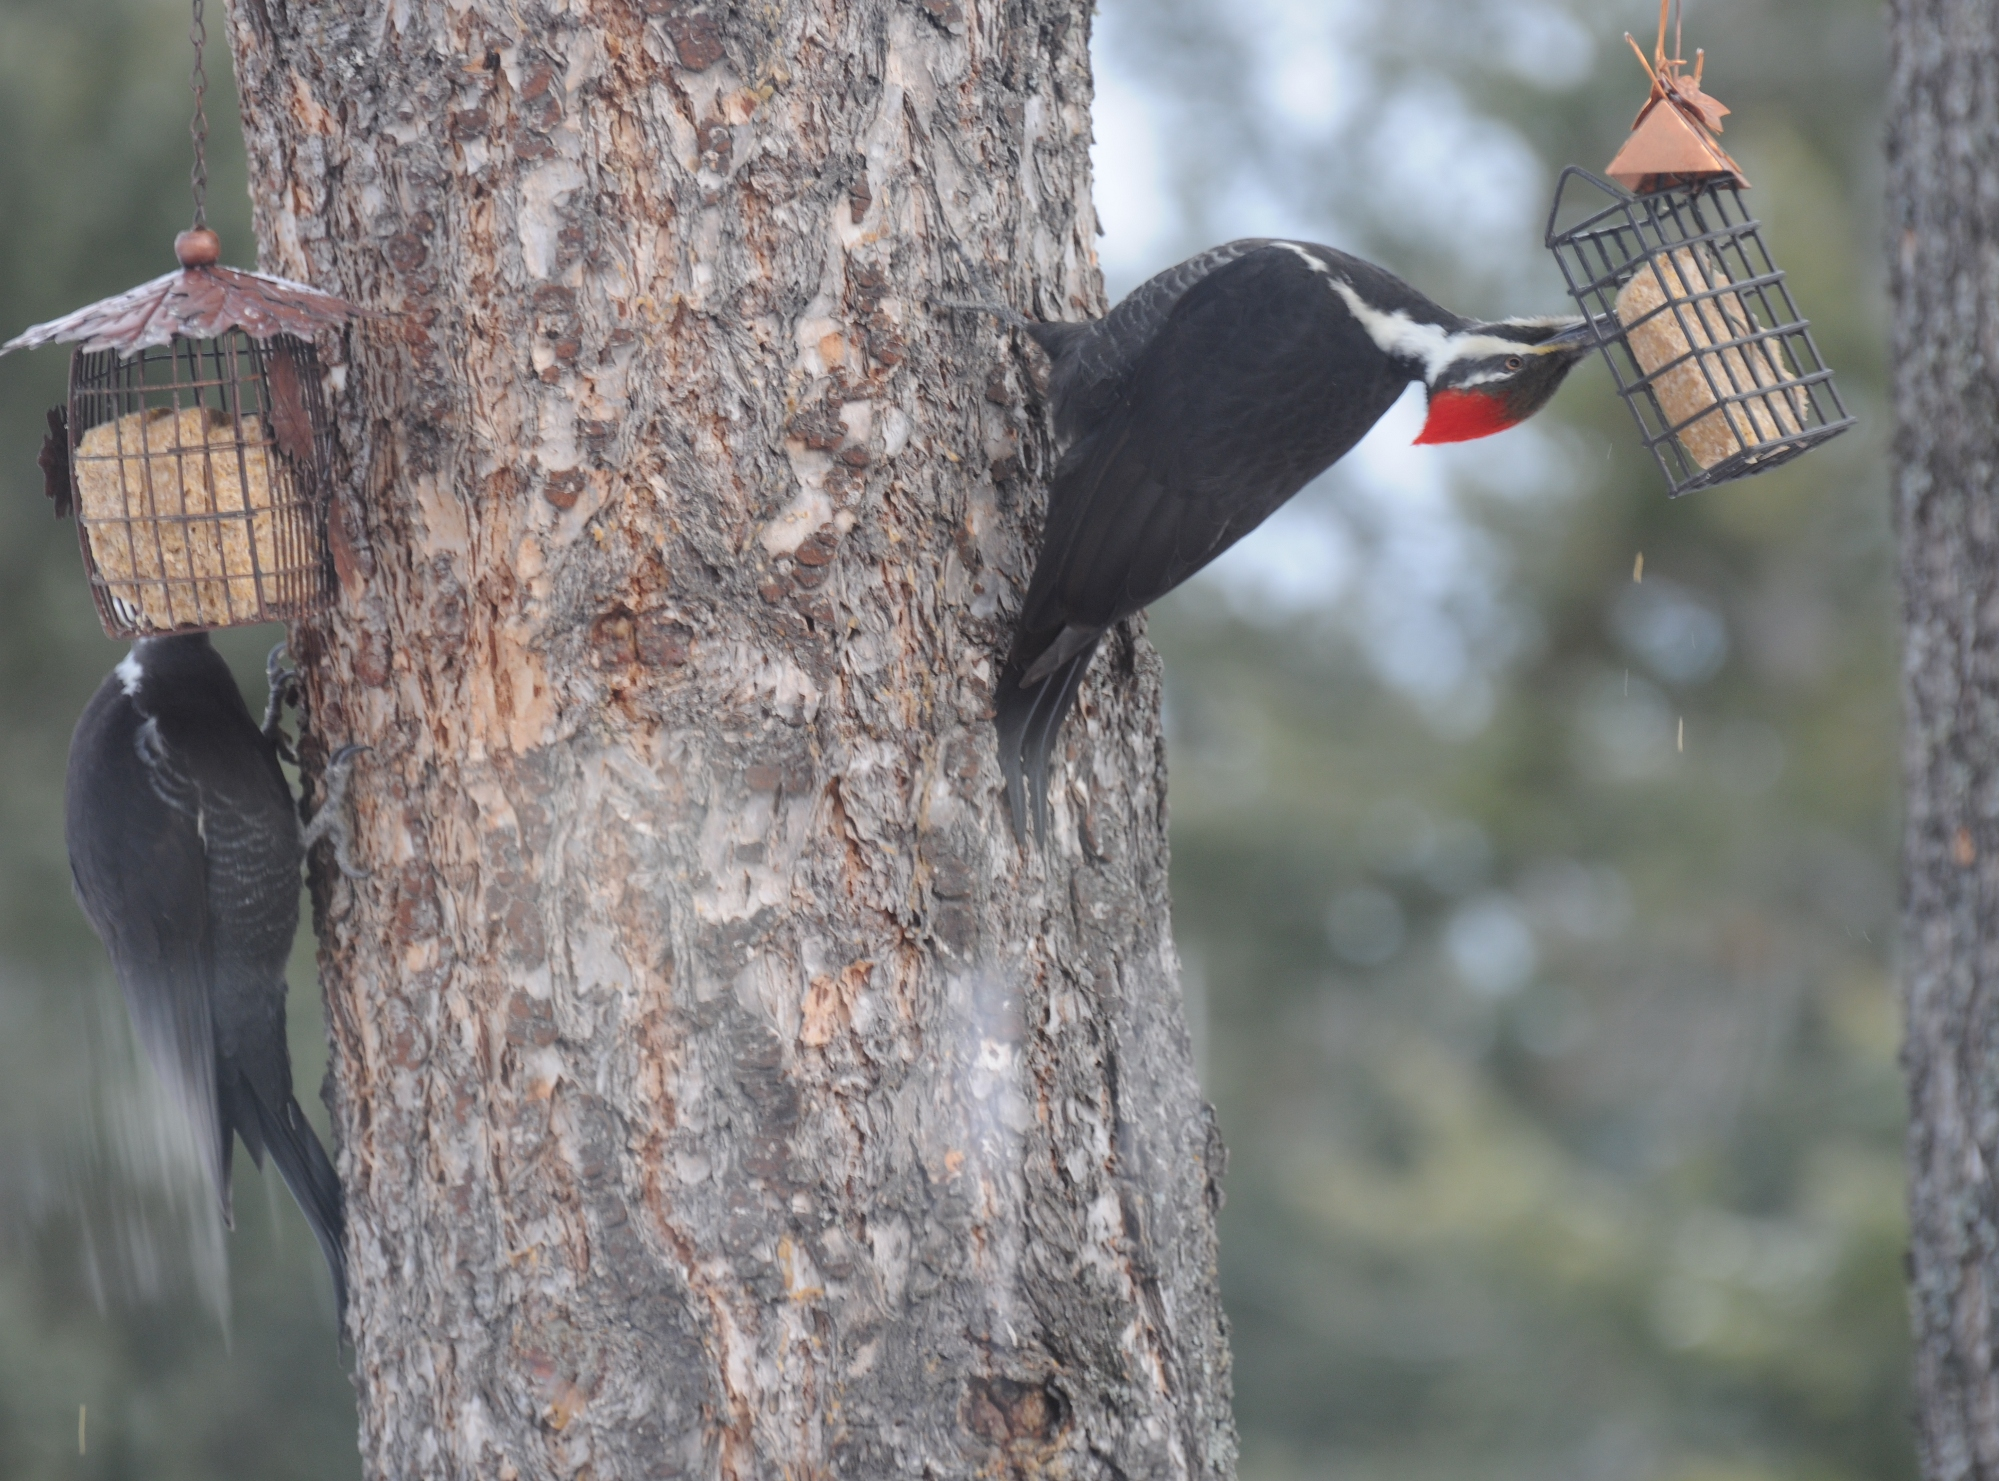 Feeding backyard birds the right way involves more than seed, suet: Aerial View | cleveland.com